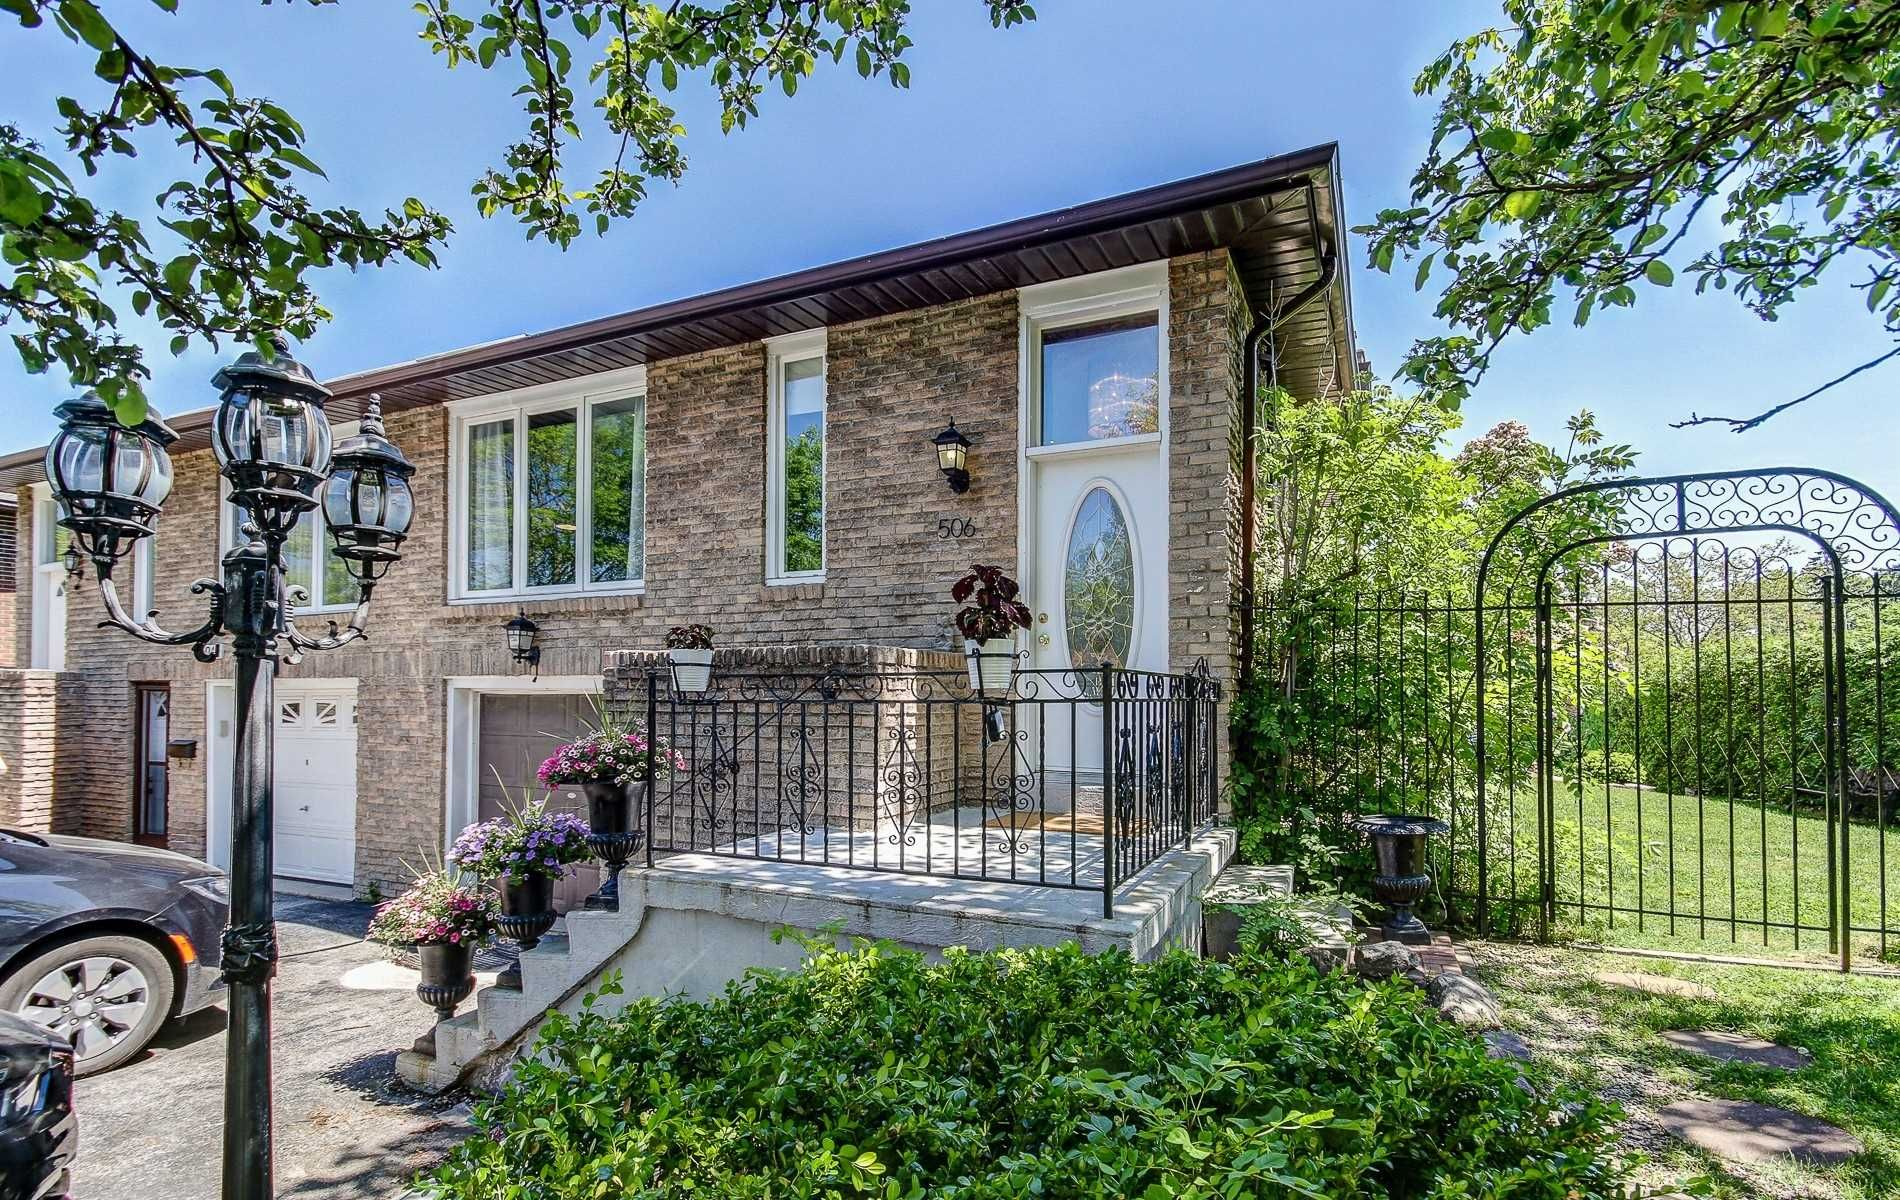 Main Photo: 506 Appledore Crescent in Mississauga: Cooksville House (Backsplit 5) for sale : MLS®# W4482006